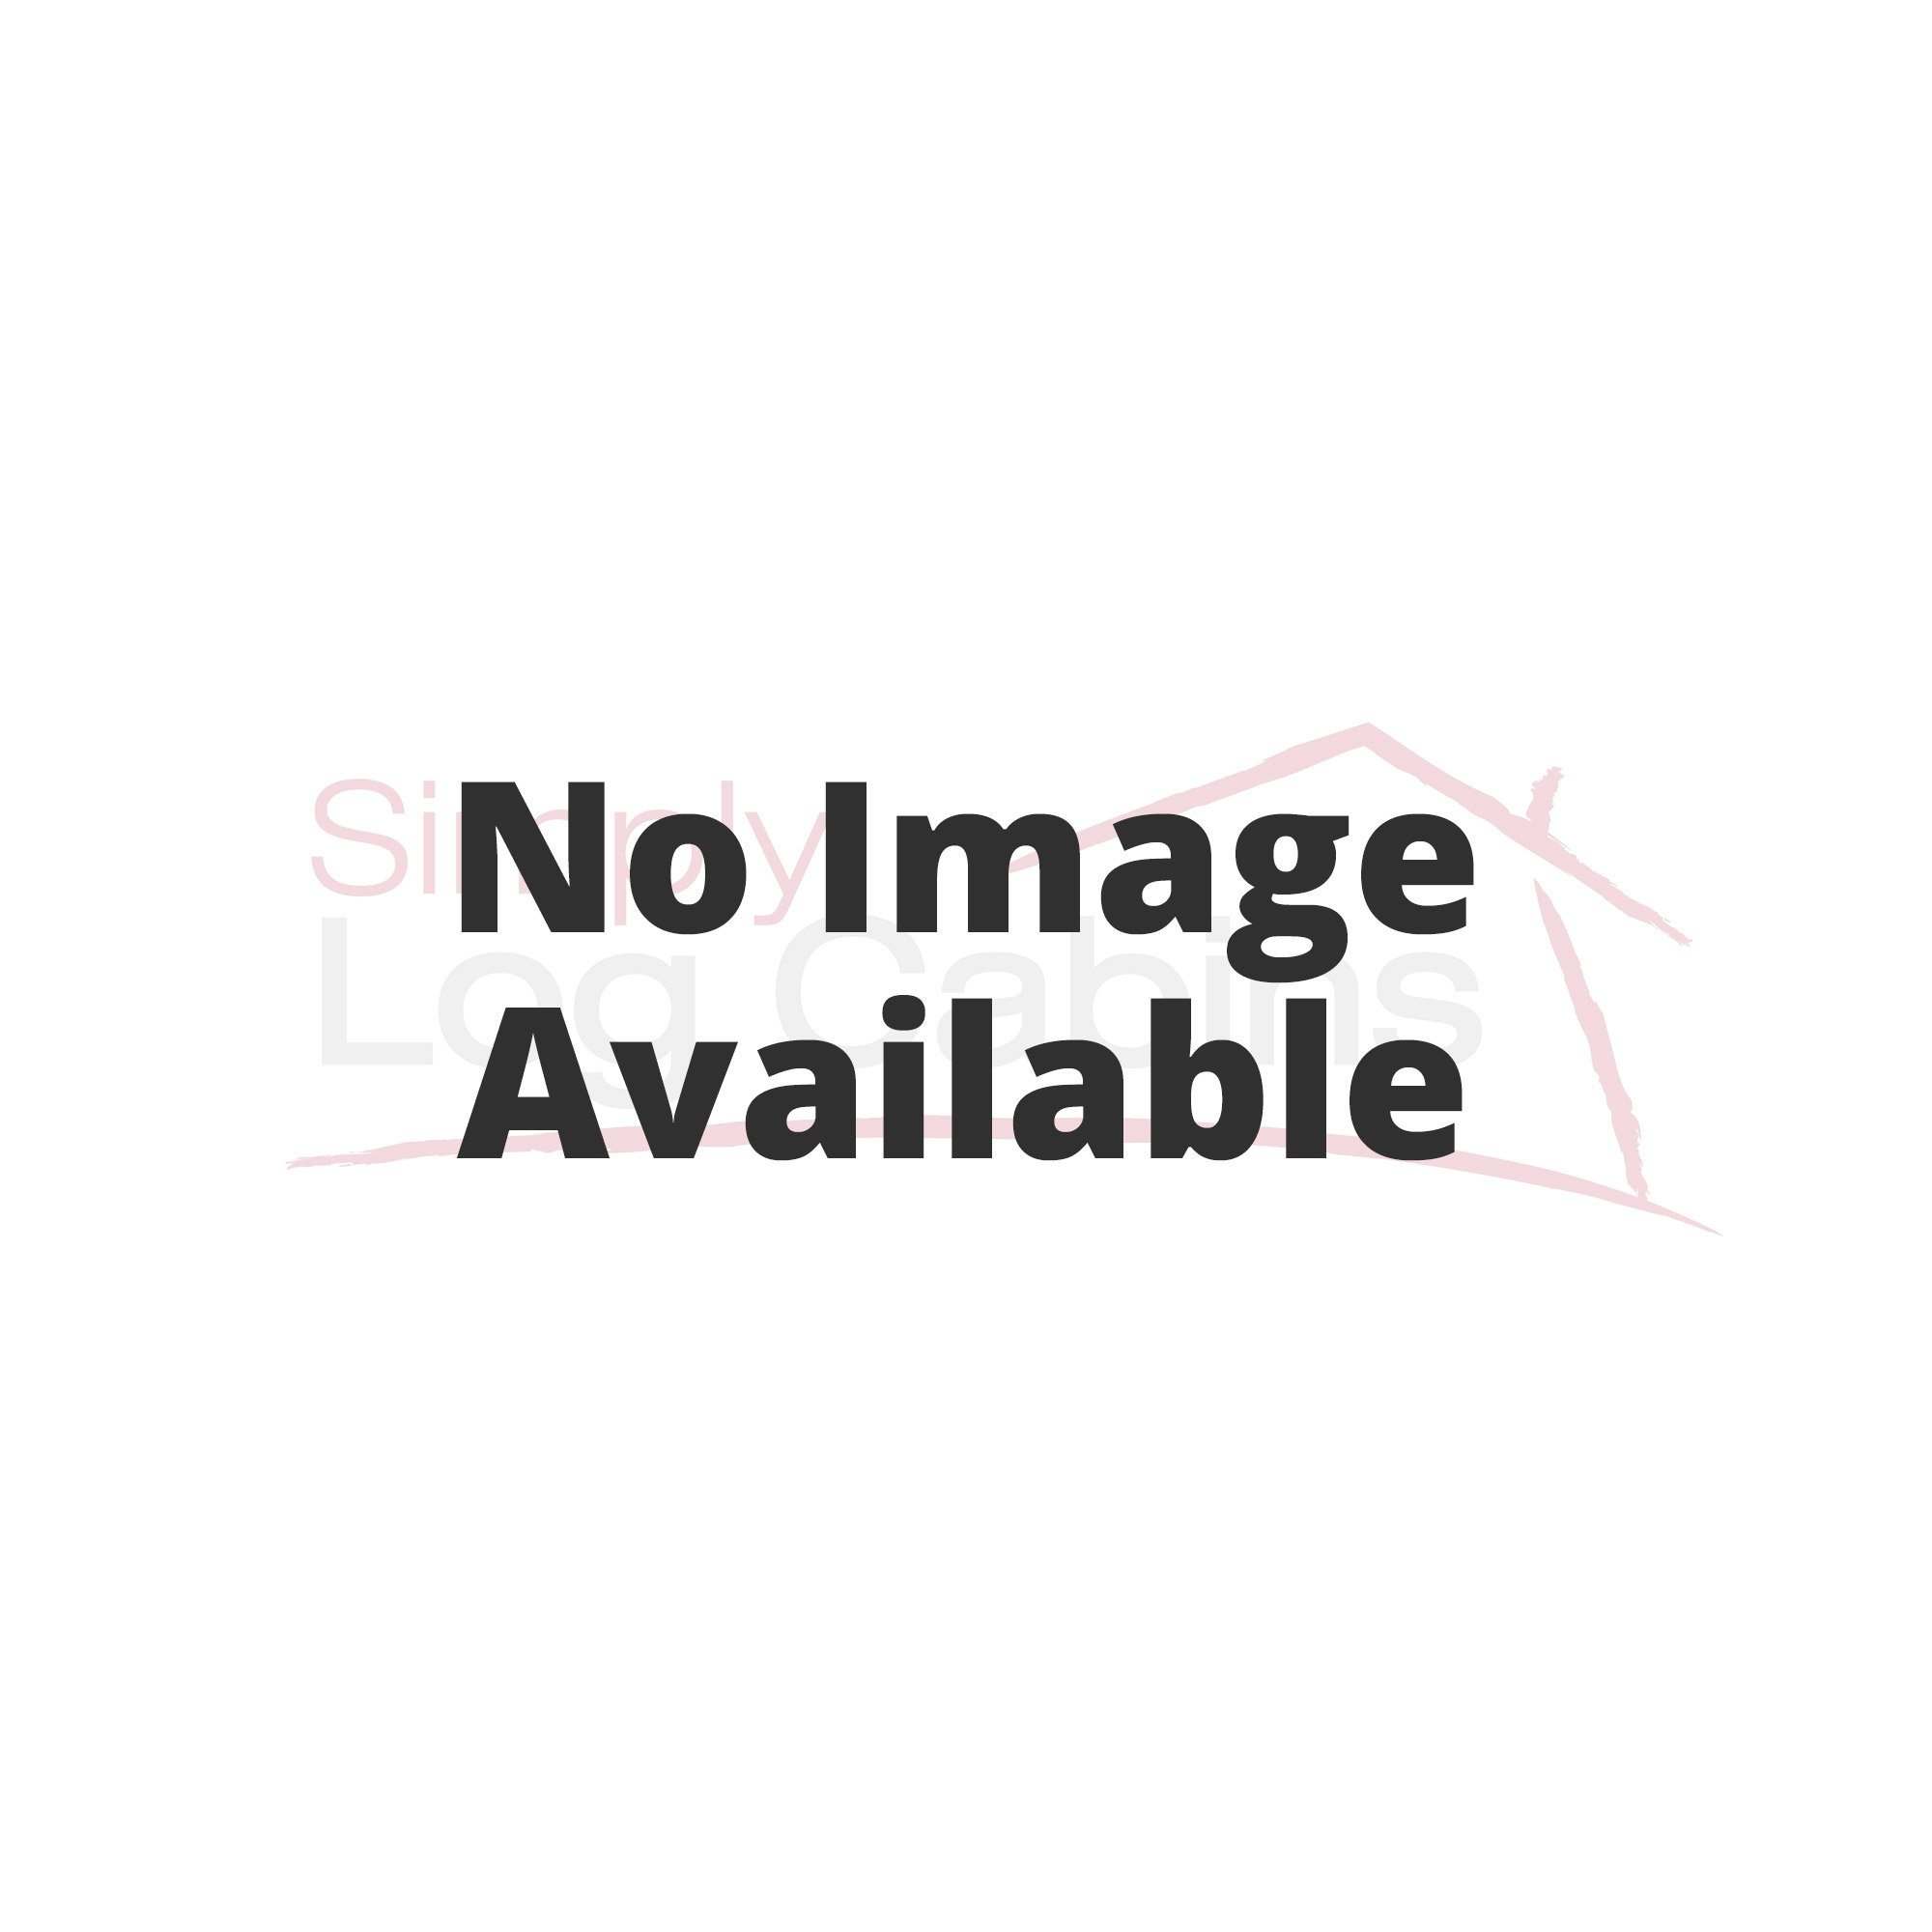 gudrum karl 1 carport 120mm glu lam posts x. Black Bedroom Furniture Sets. Home Design Ideas